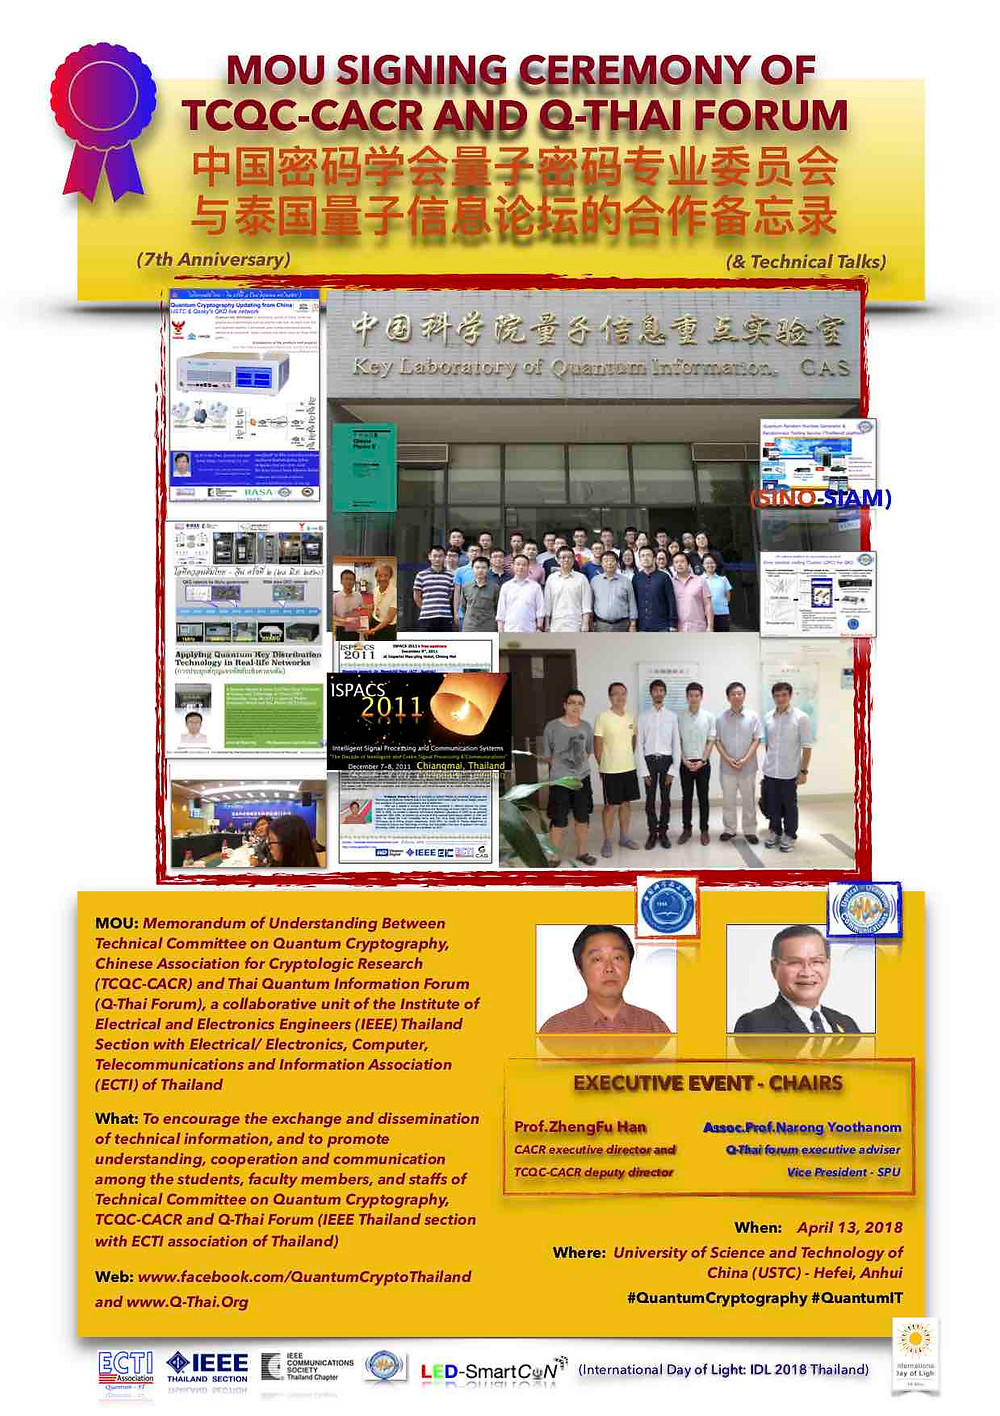 To encourage the exchange and dissemination of technical information, and to promote understanding, cooperation and communication among the students, faculty members, and staffs of Technical Committee on Quantum Cryptography, Chinese Association for Cryptologic Research (TCQC-CACR) and Q-Thai Forum (under the collaboration of IEEE Thailand section with ECTI association of Thailand)